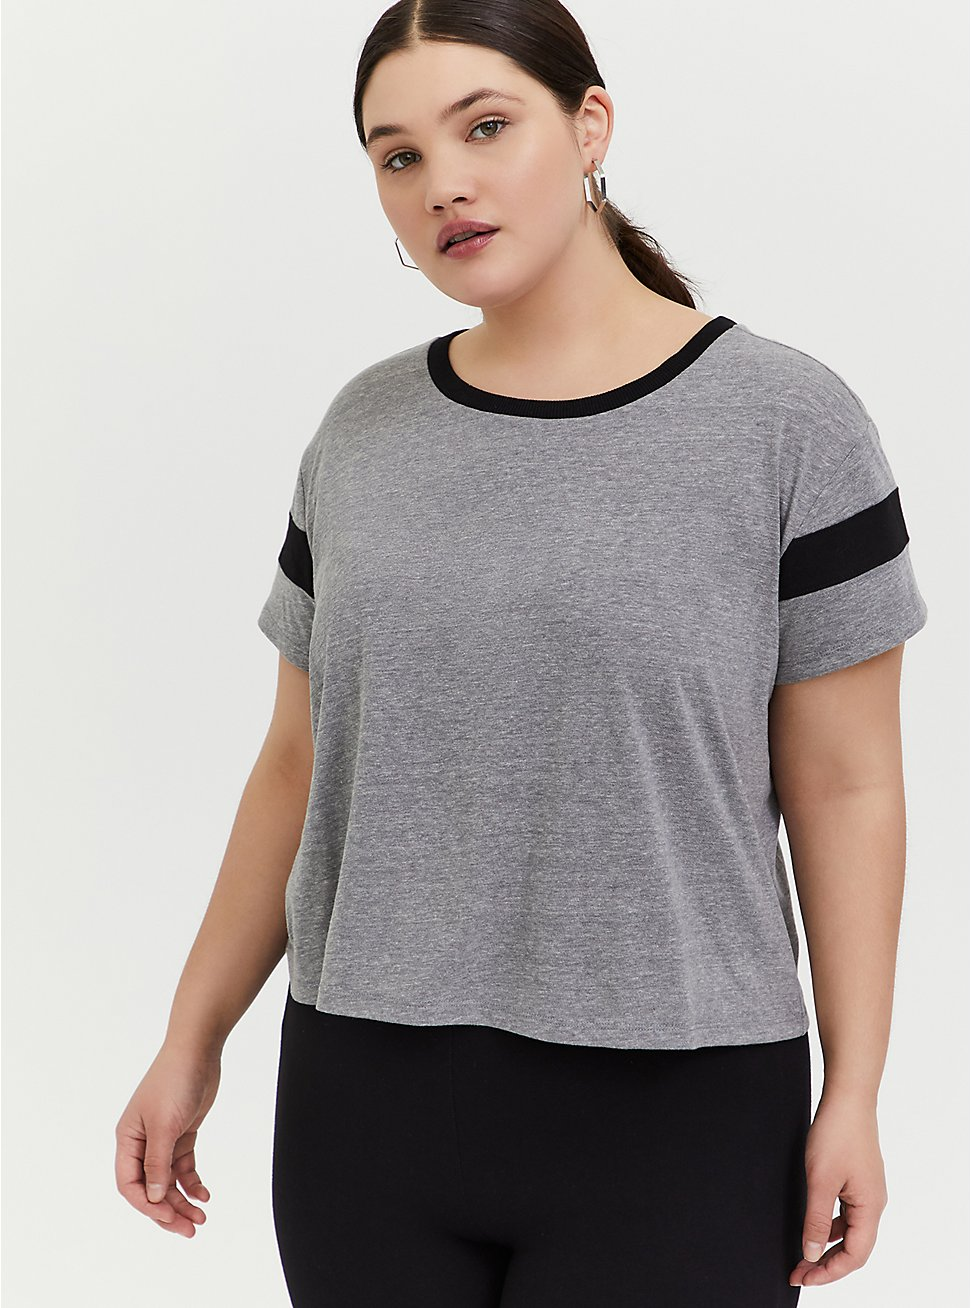 Crop Relaxed Fit Ringer Tee - Triblend Jersey Heather Grey, HEATHER GREY, hi-res